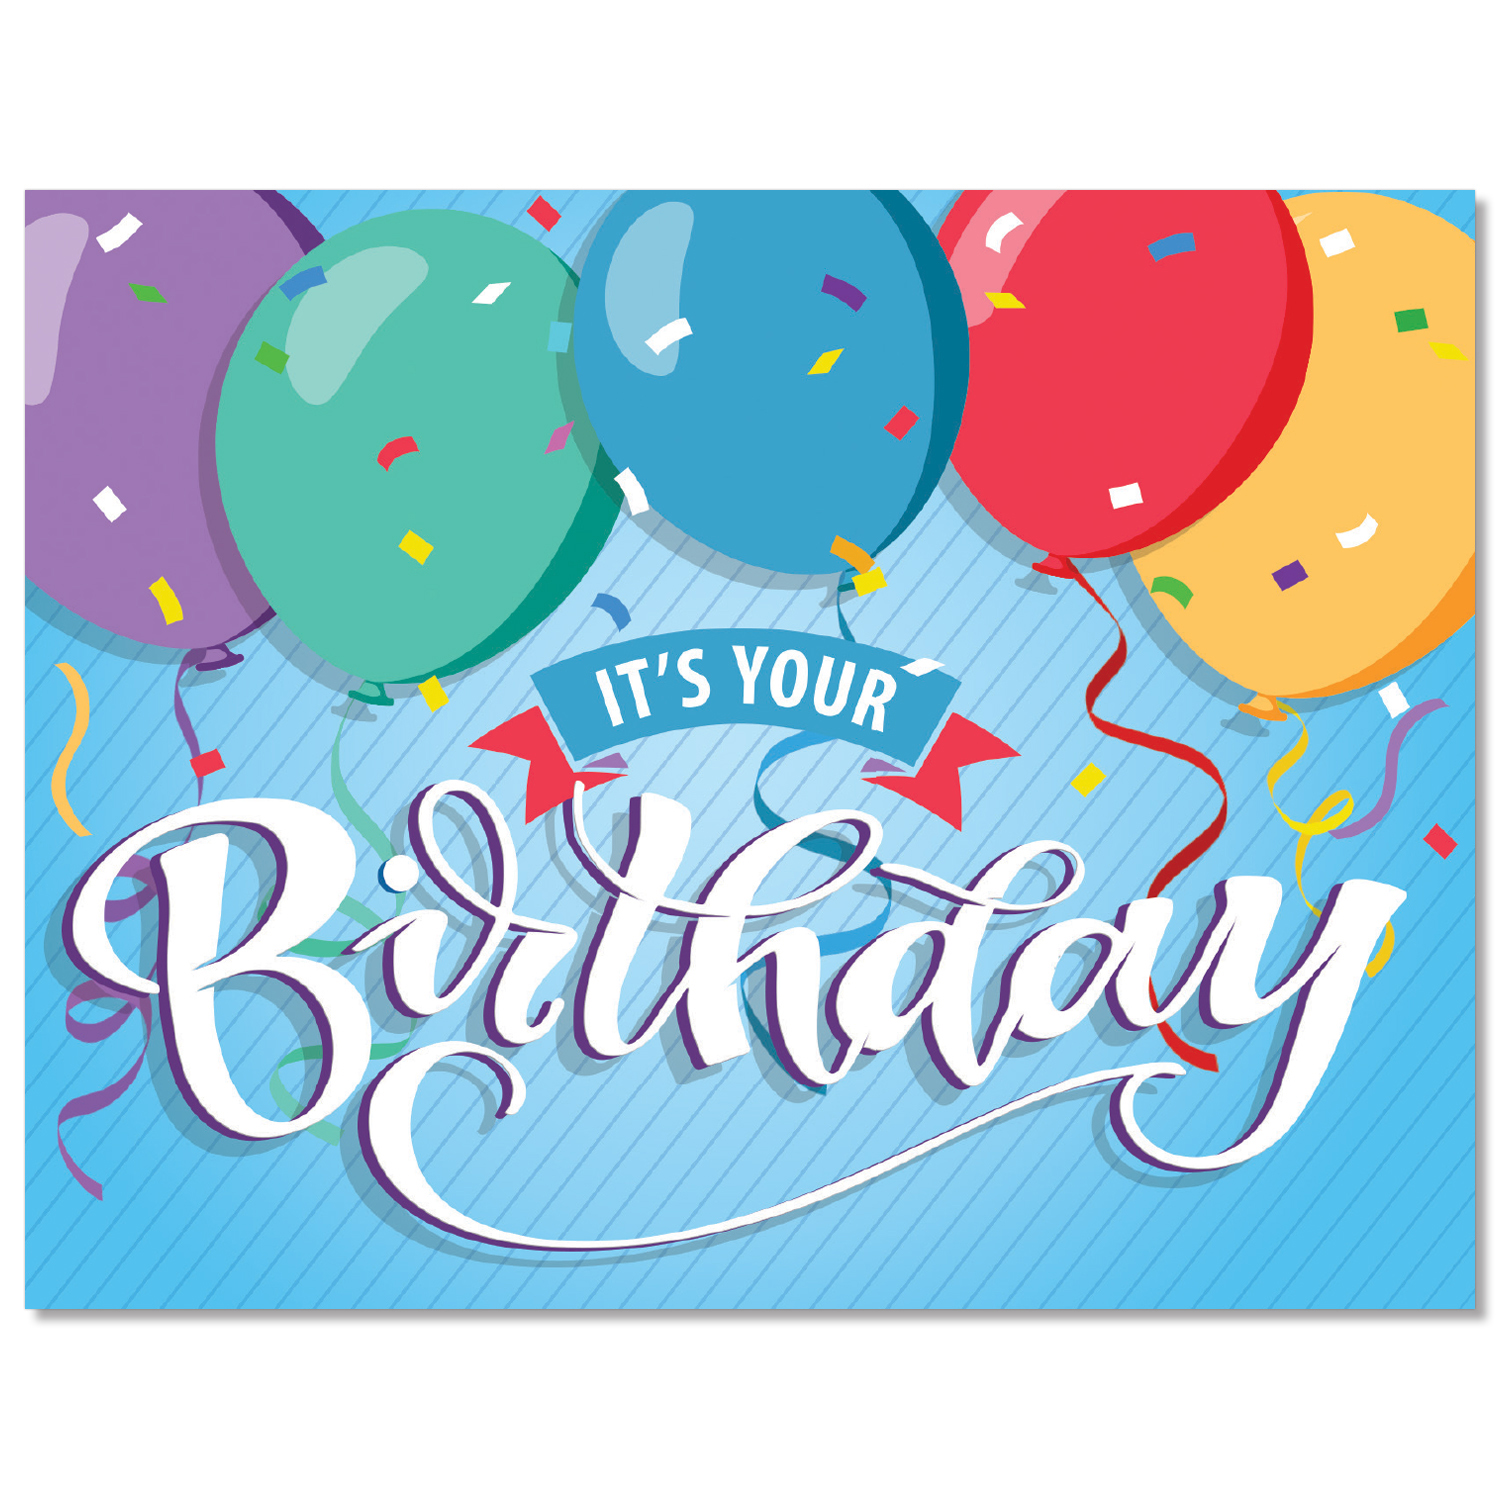 It's Your Birthday Balloons Card